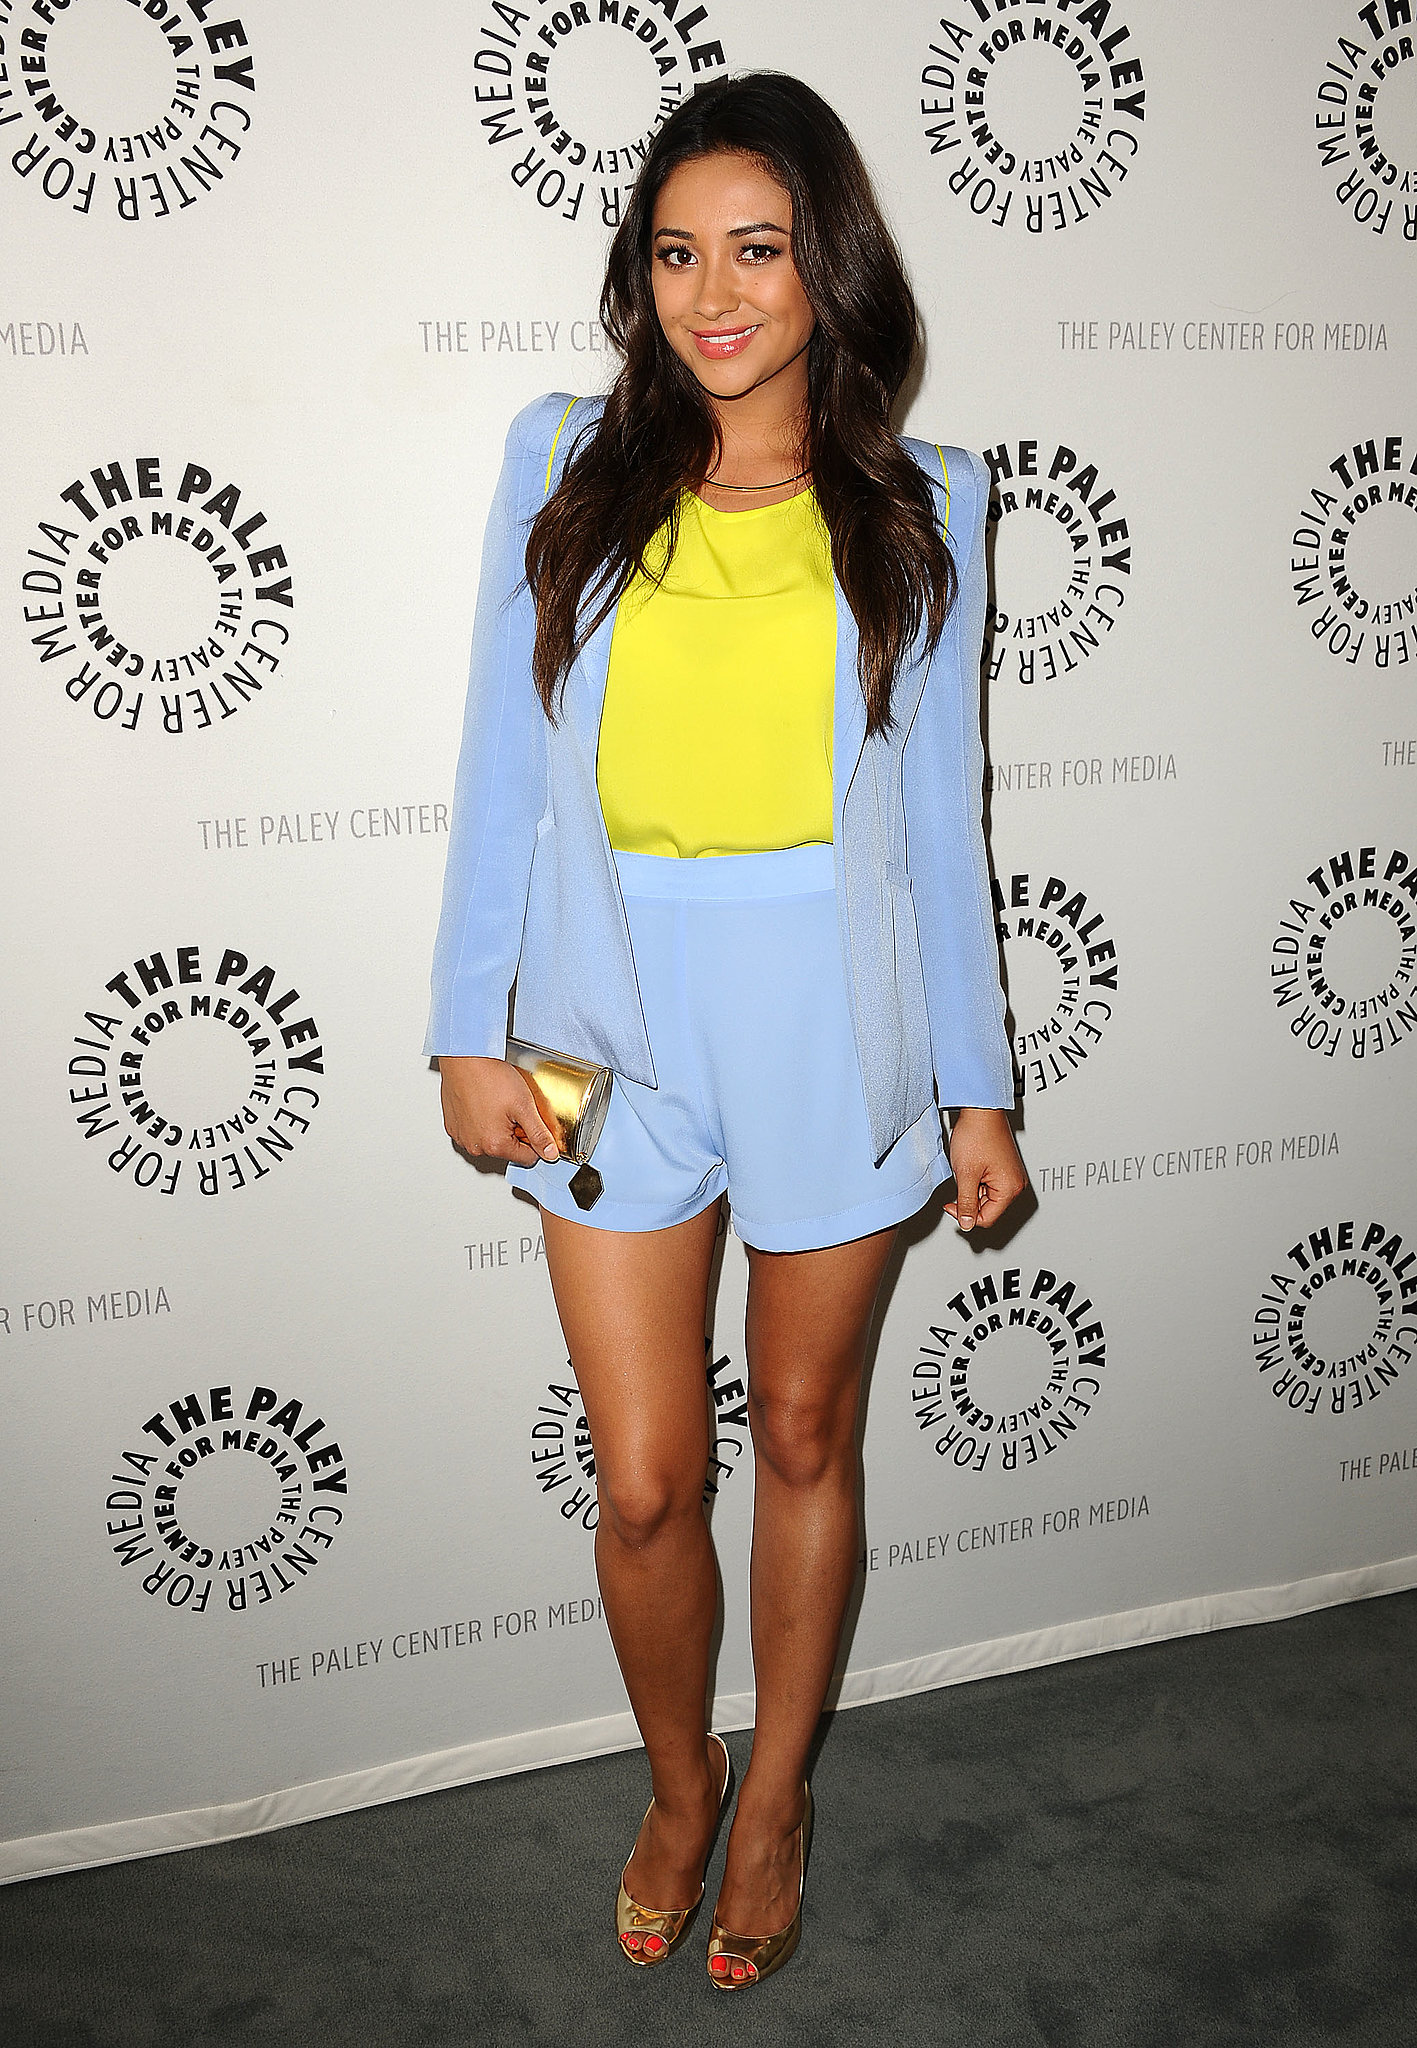 Shay Mitchell creates a fun Summer color duo with a baby blue shorts suit and a neon yellow tank at a Paley Center for Media event in LA.